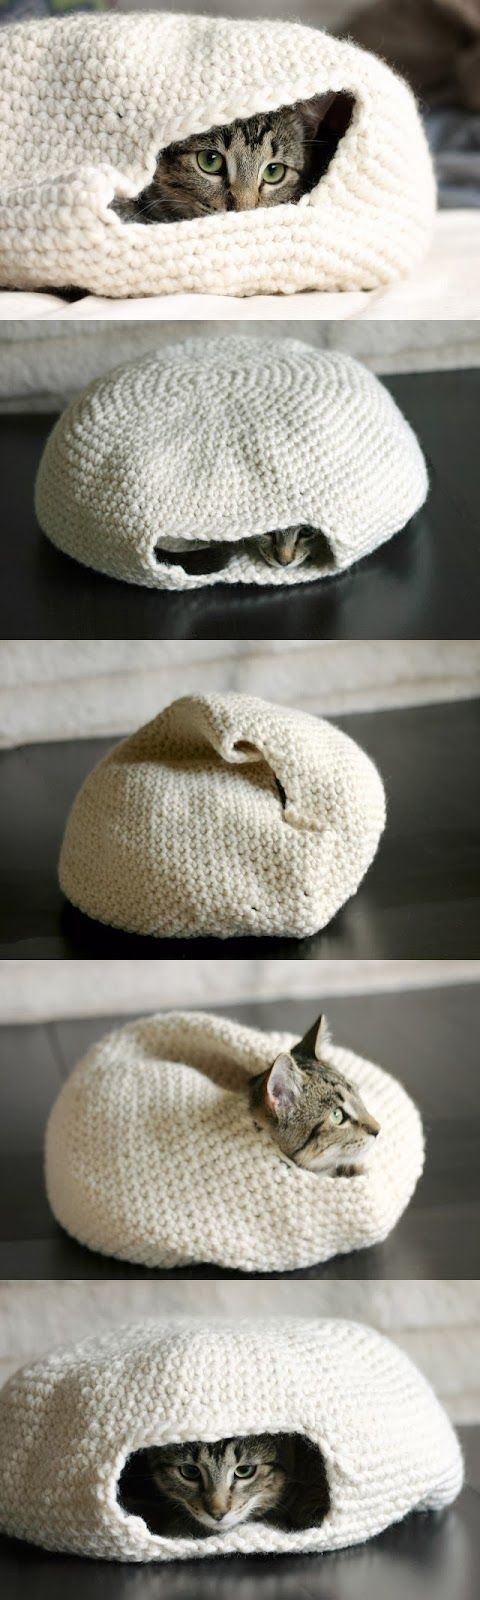 Crochet - Handmade crochet cat bed.